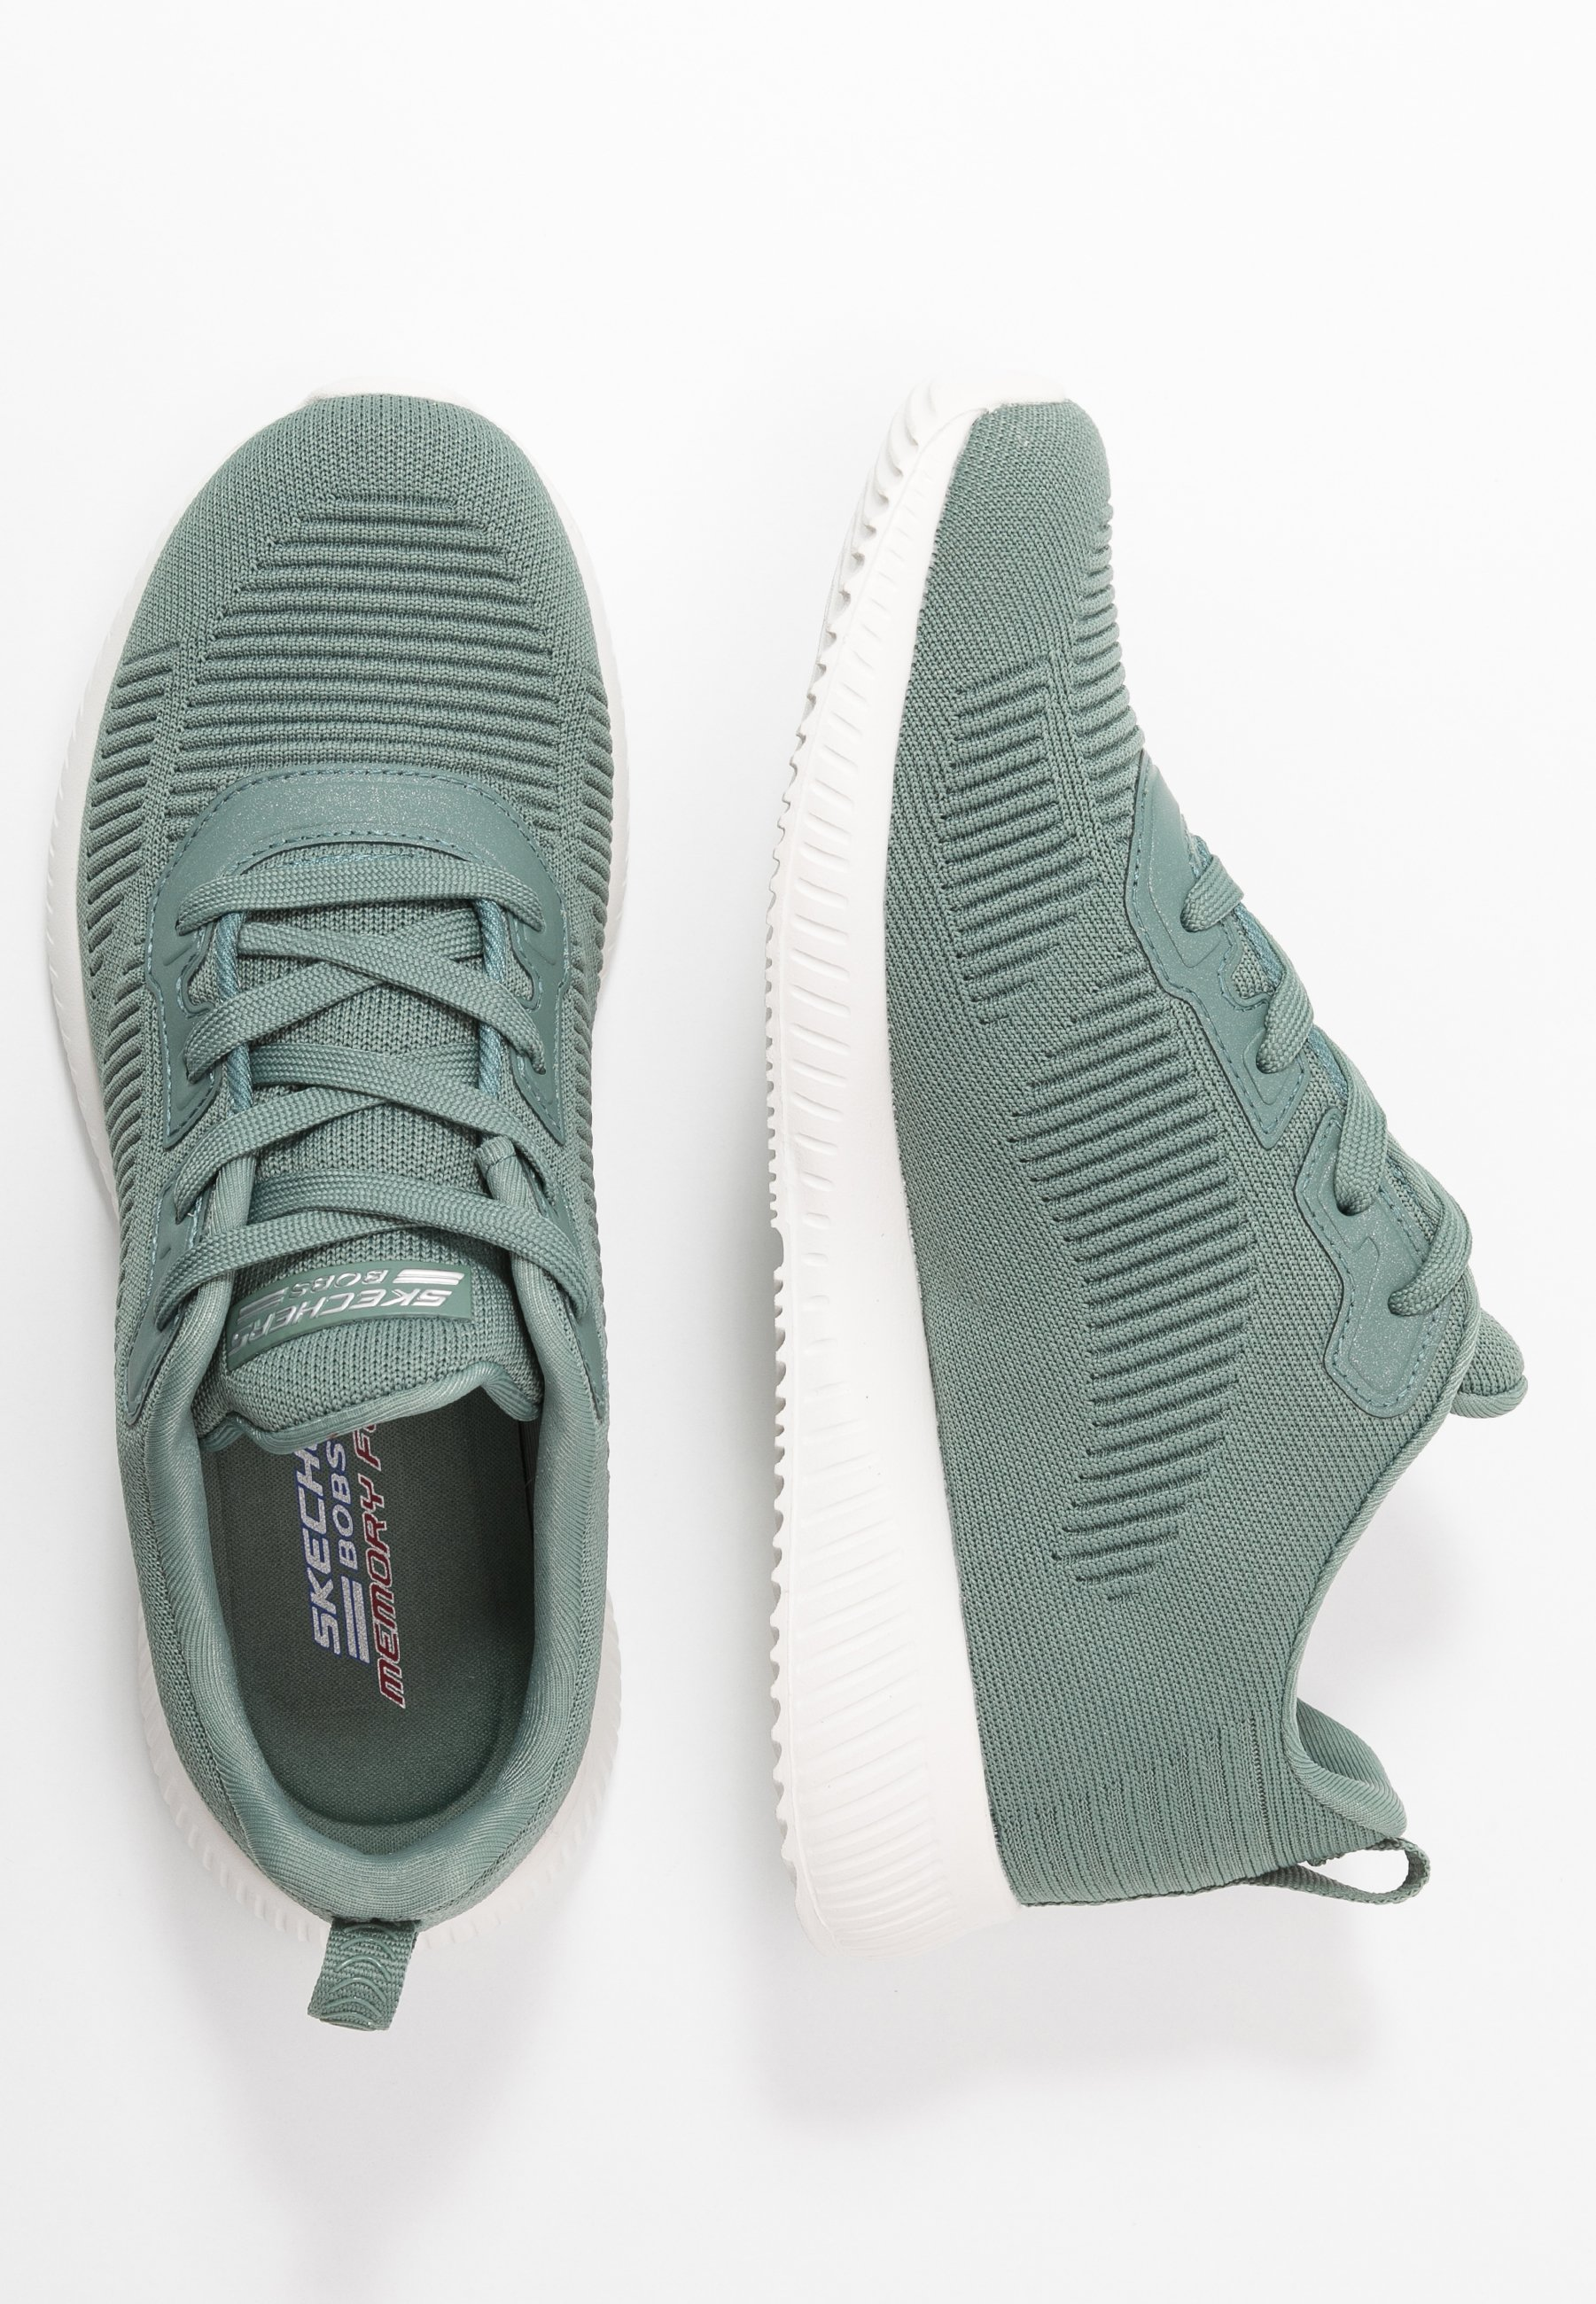 BOBS SQUAD Sneakers green